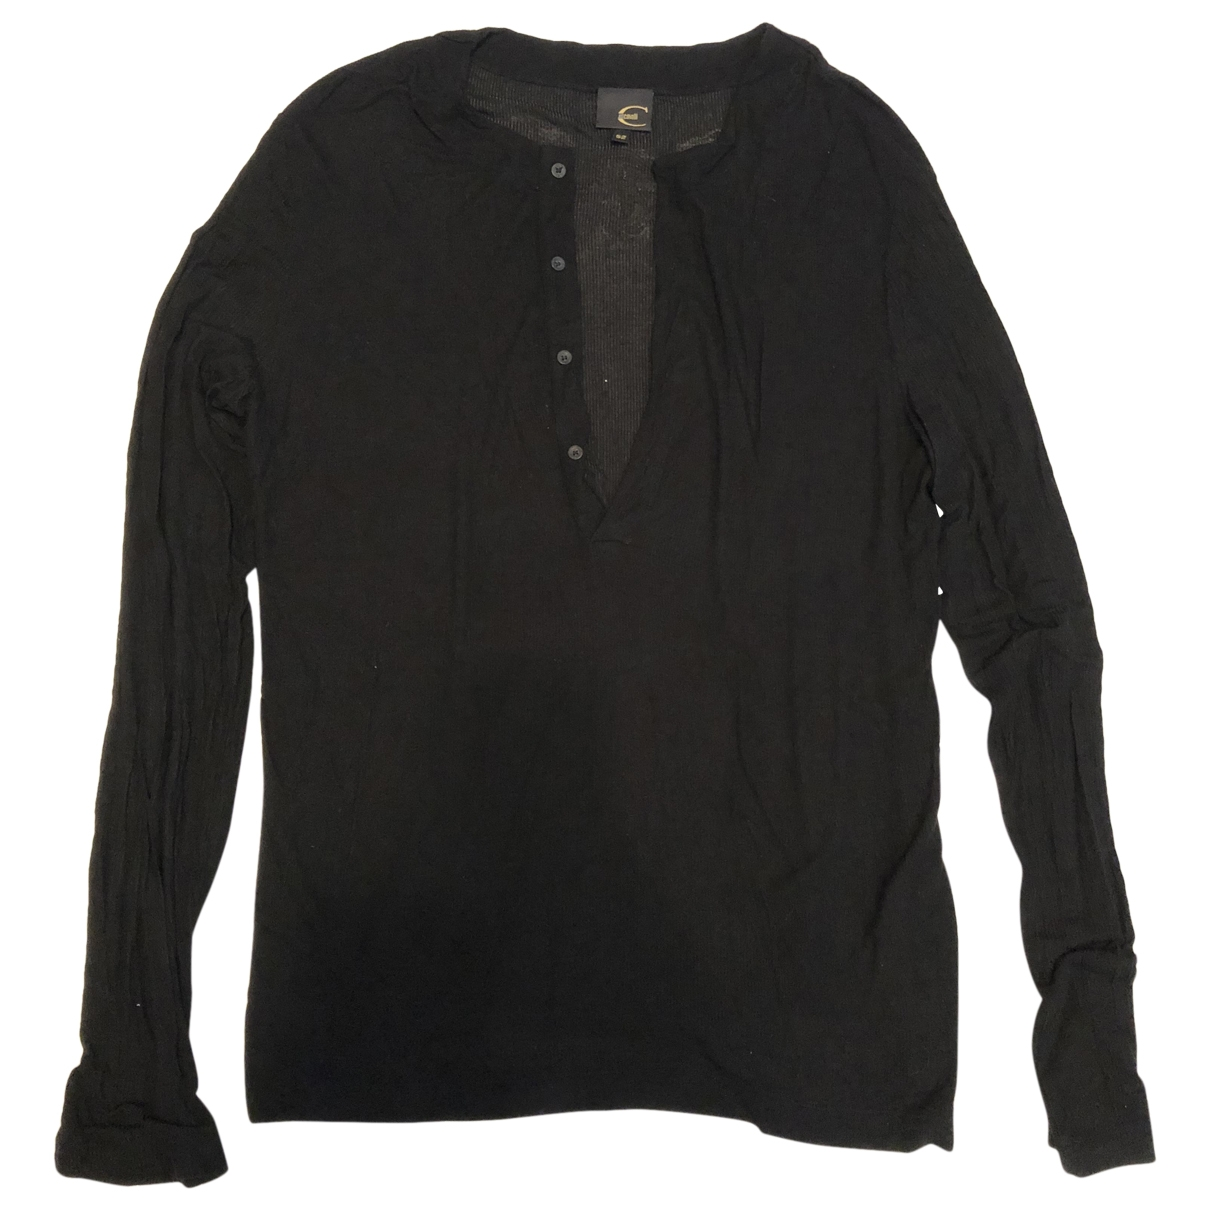 Roberto Cavalli \N Black Knitwear & Sweatshirts for Men 52 IT